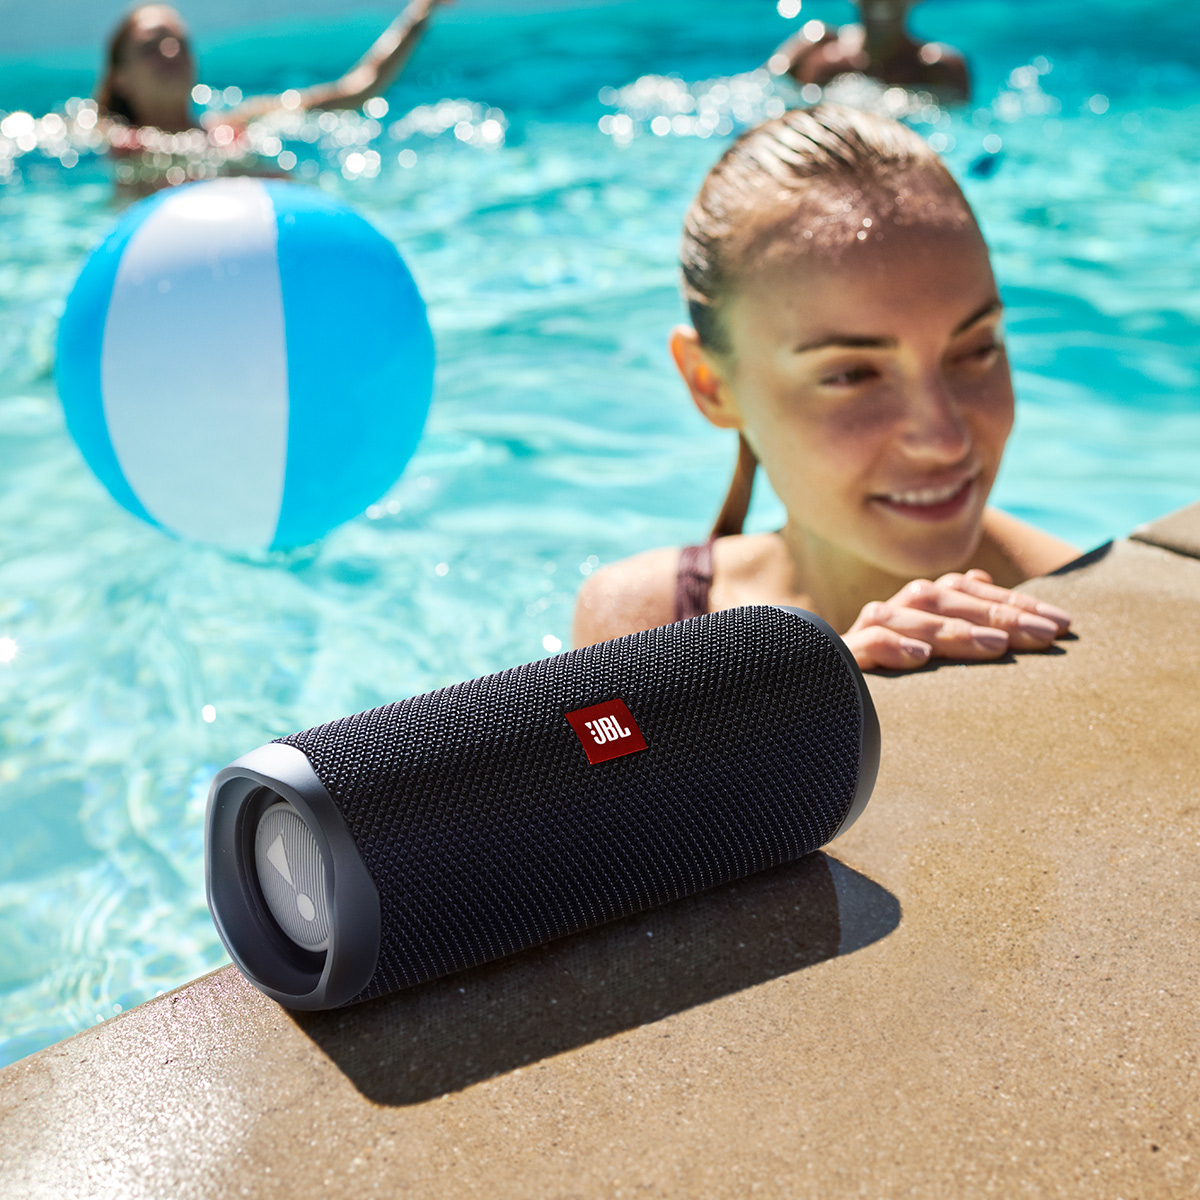 JBL-Flip-5-Portable-Waterproof-Bluetooth-Speaker thumbnail 6